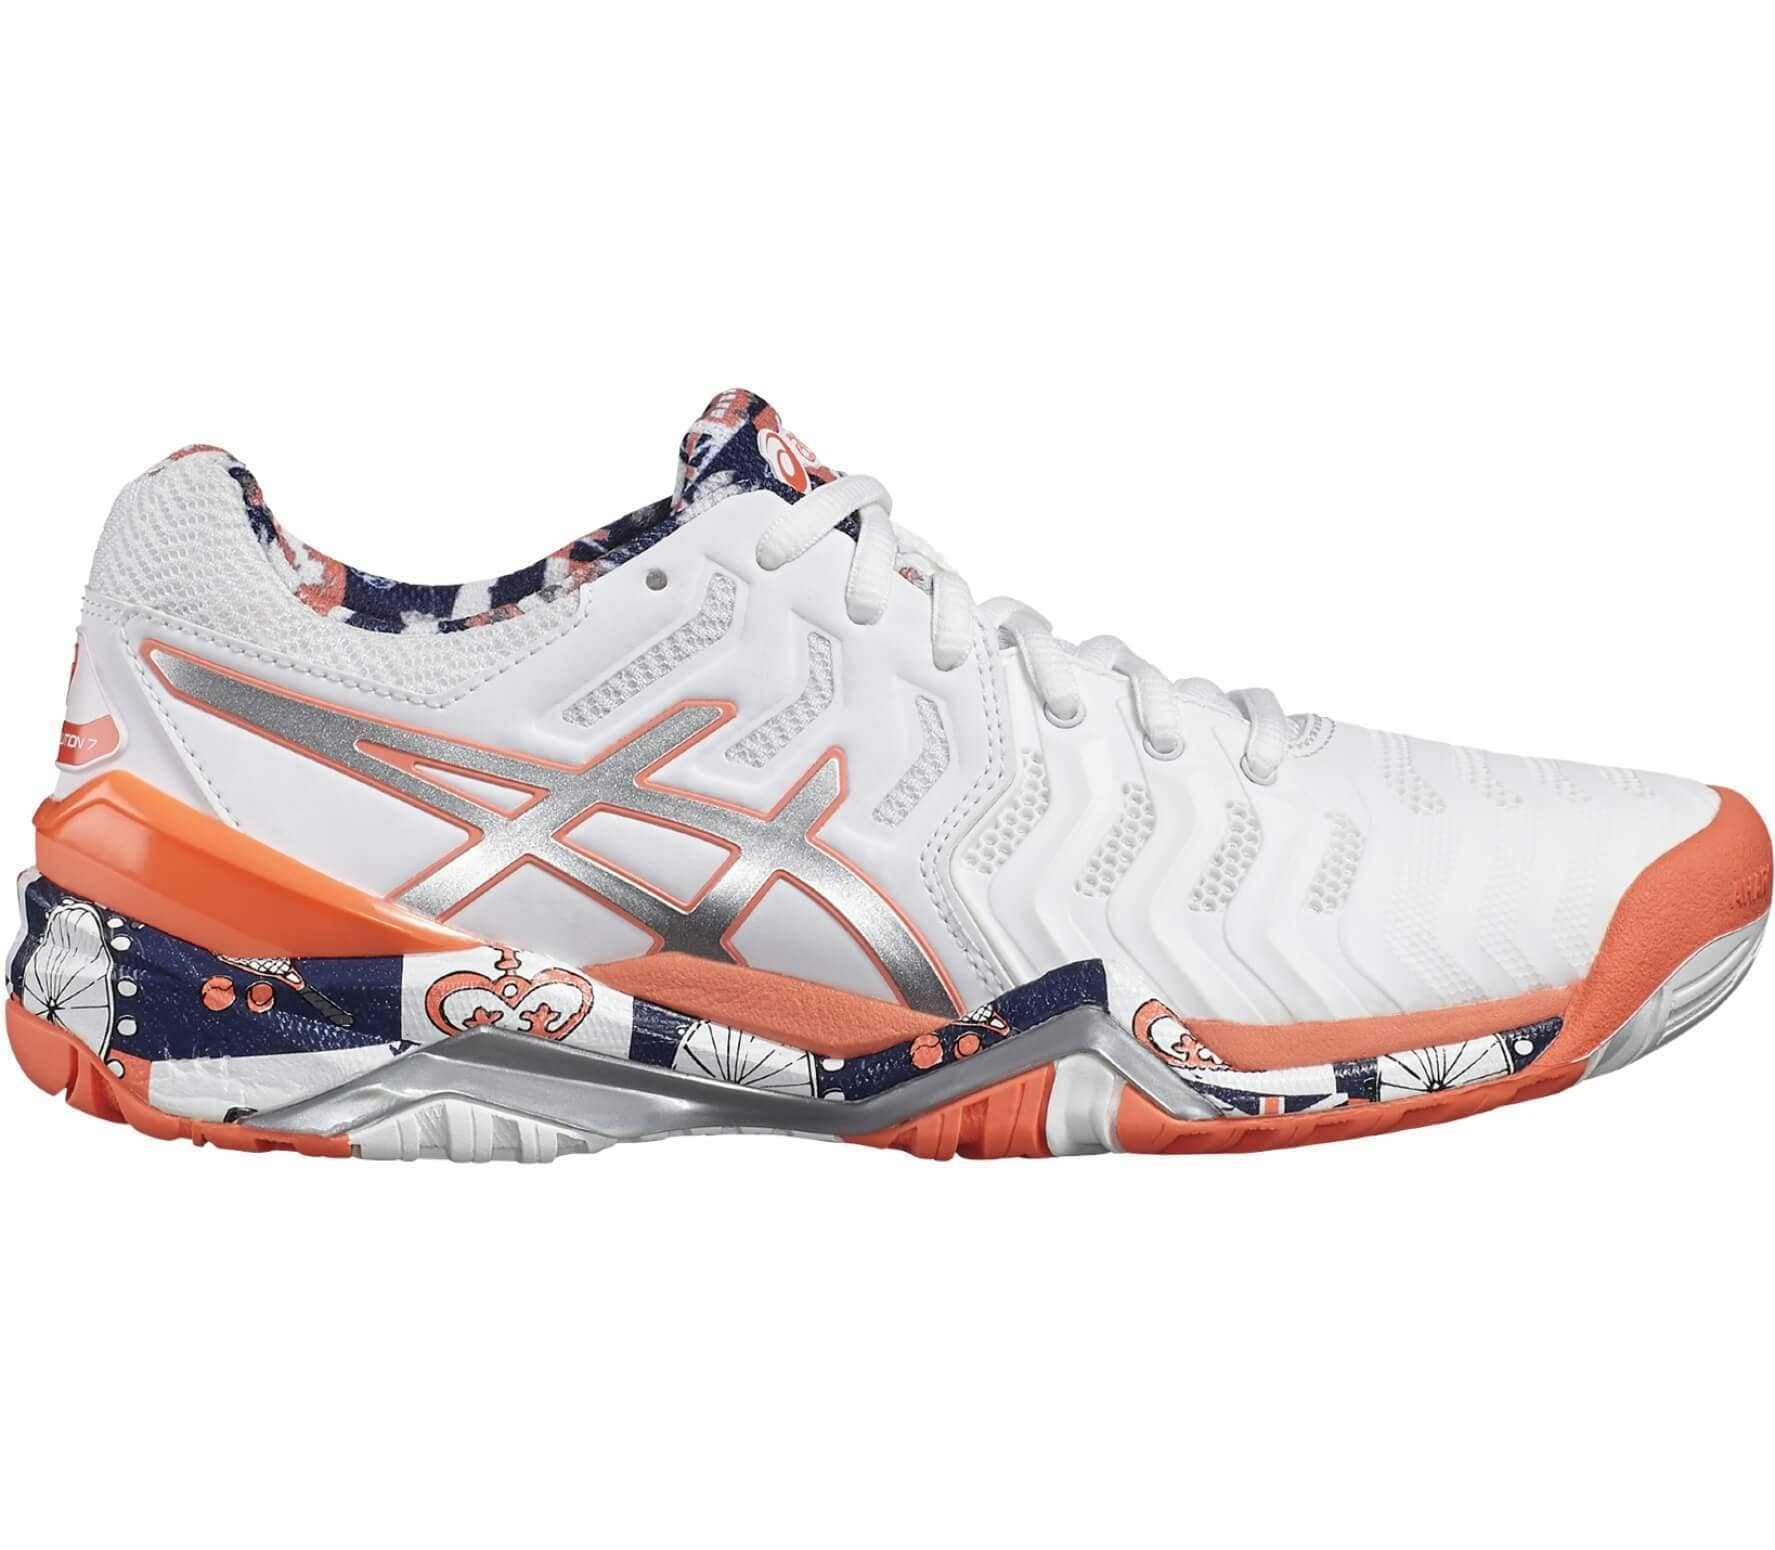 5e8eff03da6f6 Asics - Gel-Resolution 7 L.E. London women s tennis shoes (white grey)